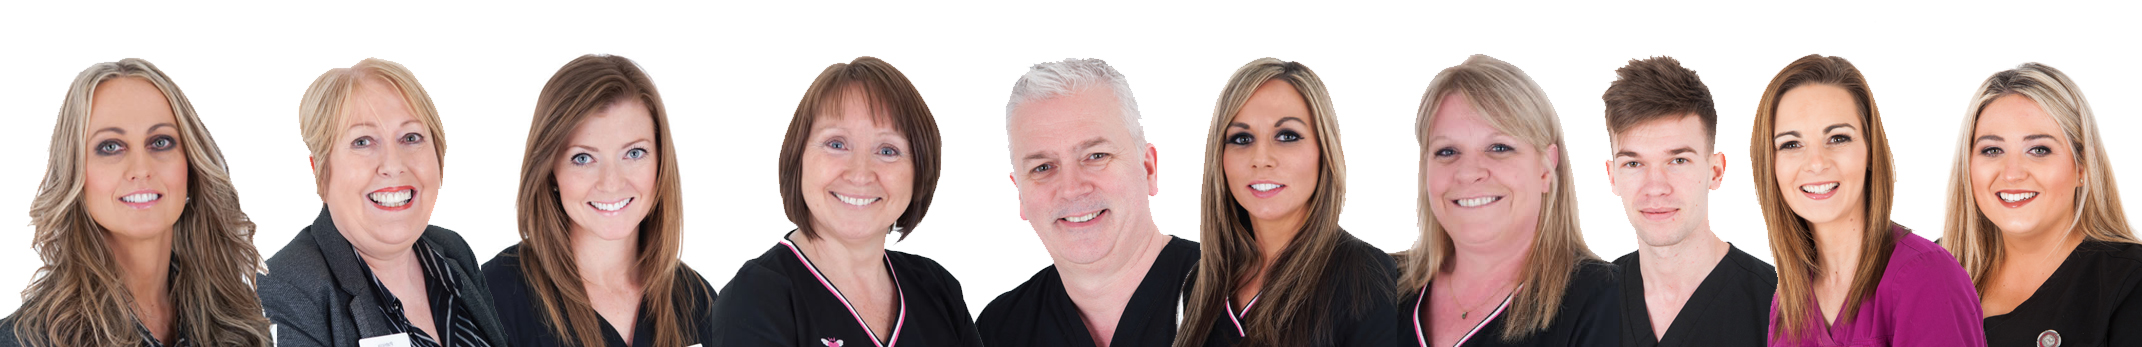 meet the team at 15 dental